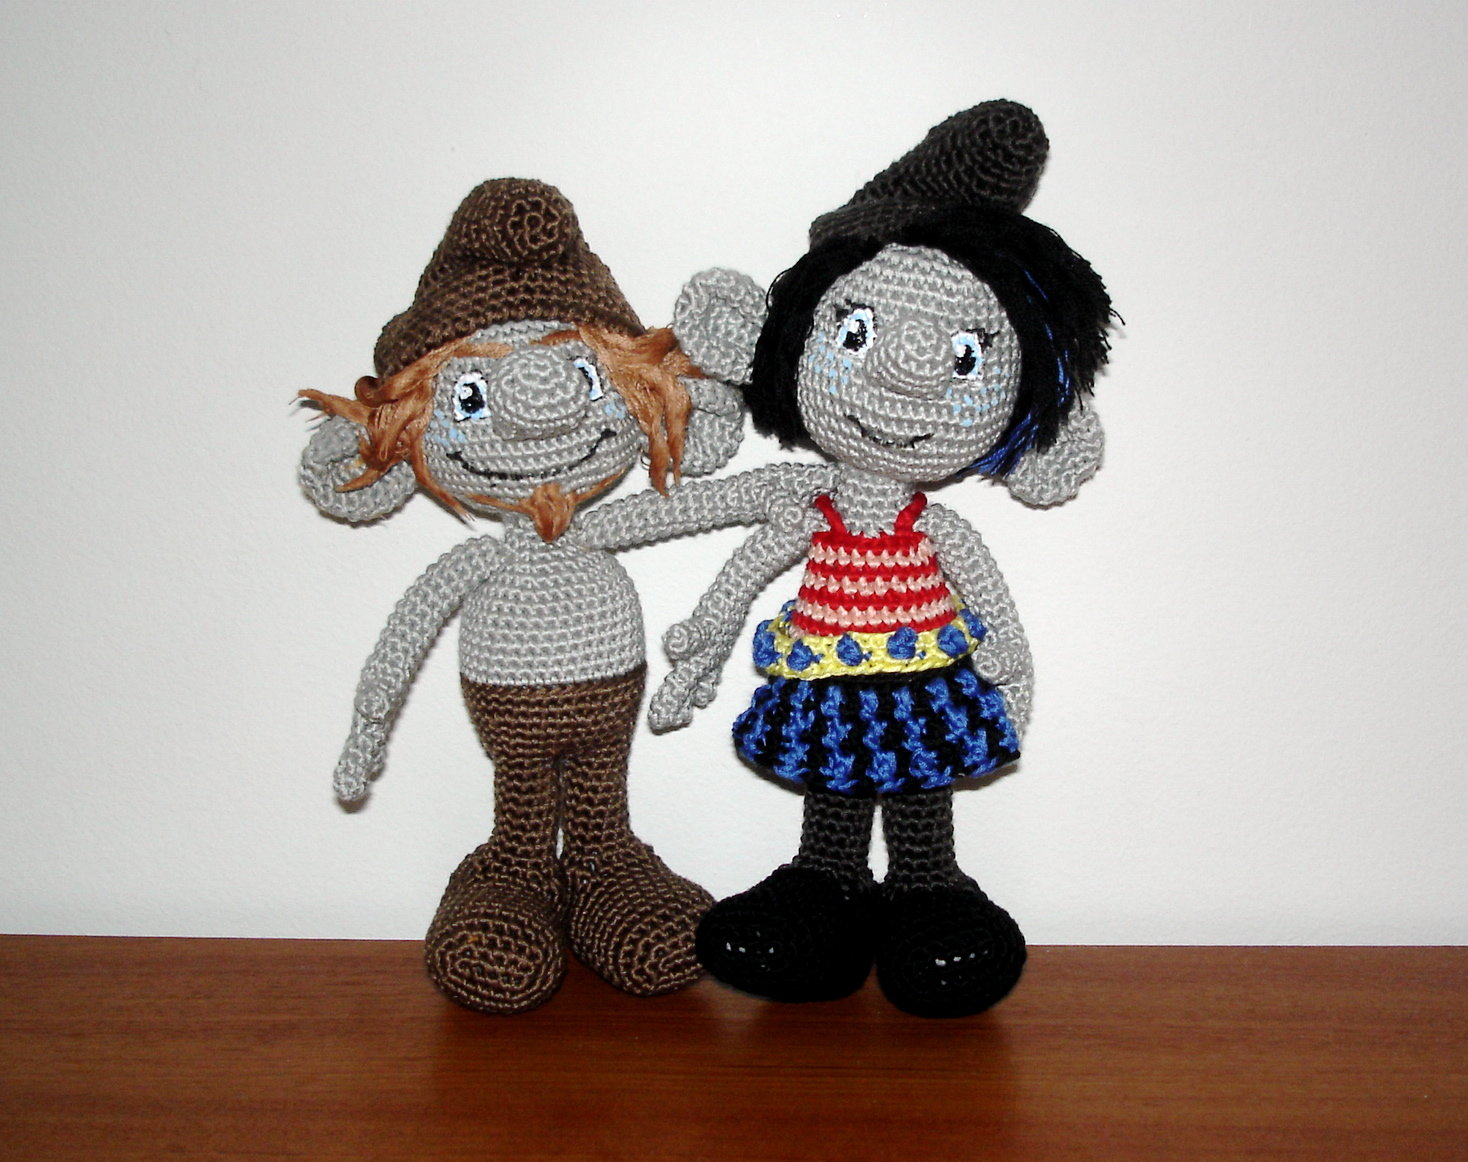 Free smurf crochet amigurumibb by cheche vexy hackus smurfs bankloansurffo Image collections